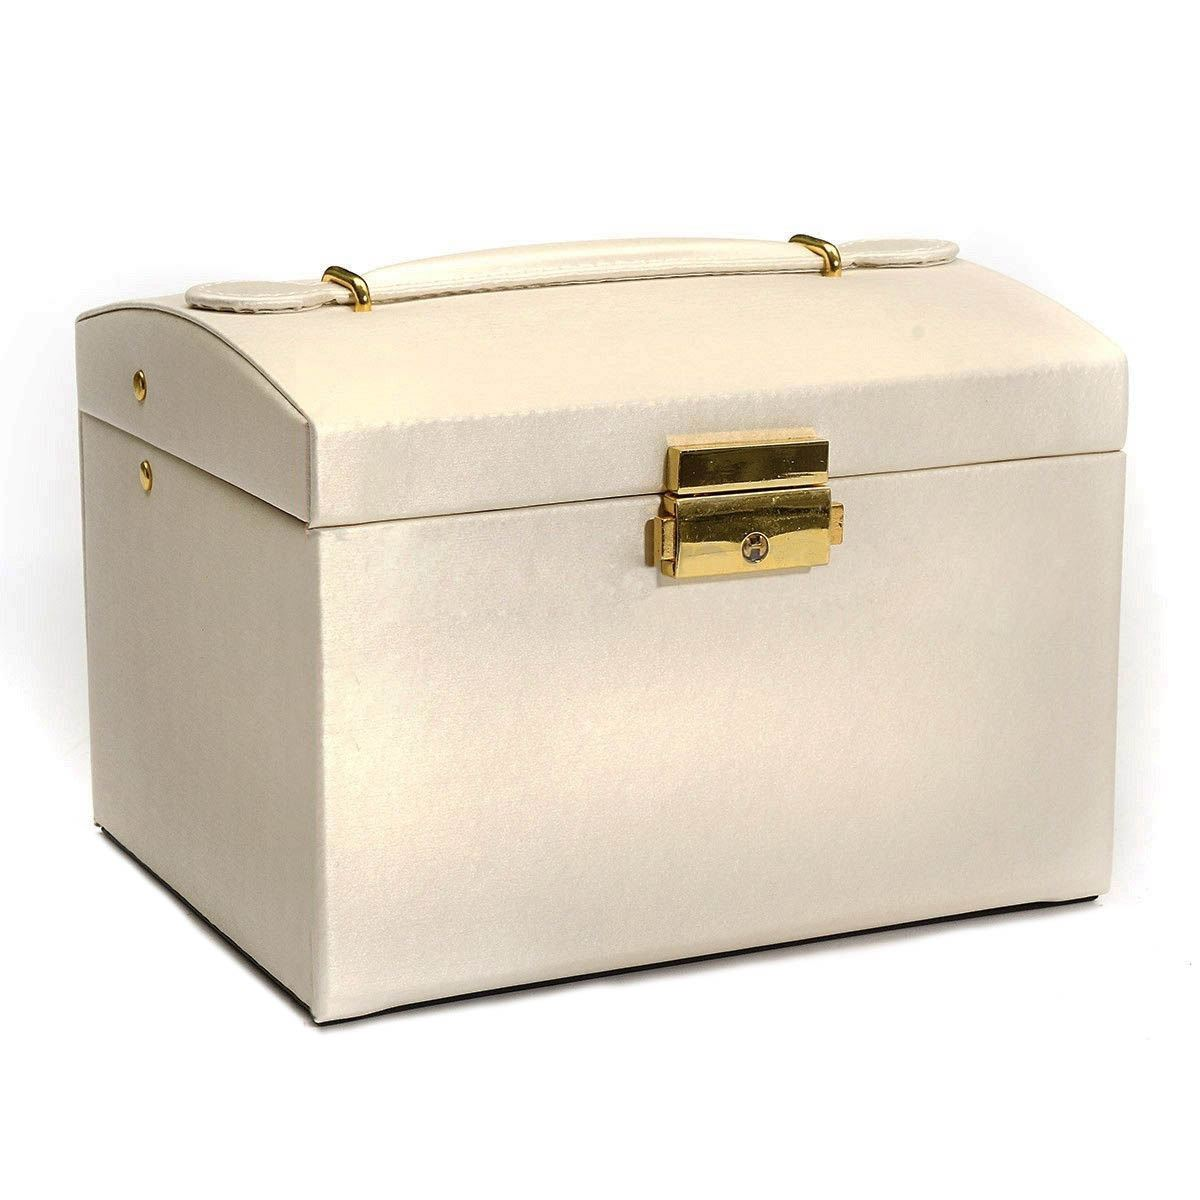 Large Jewelry Packaging Display Box Armoire Dressing Chest with Clasps Bracelet Ring Organiser Carrying Cases